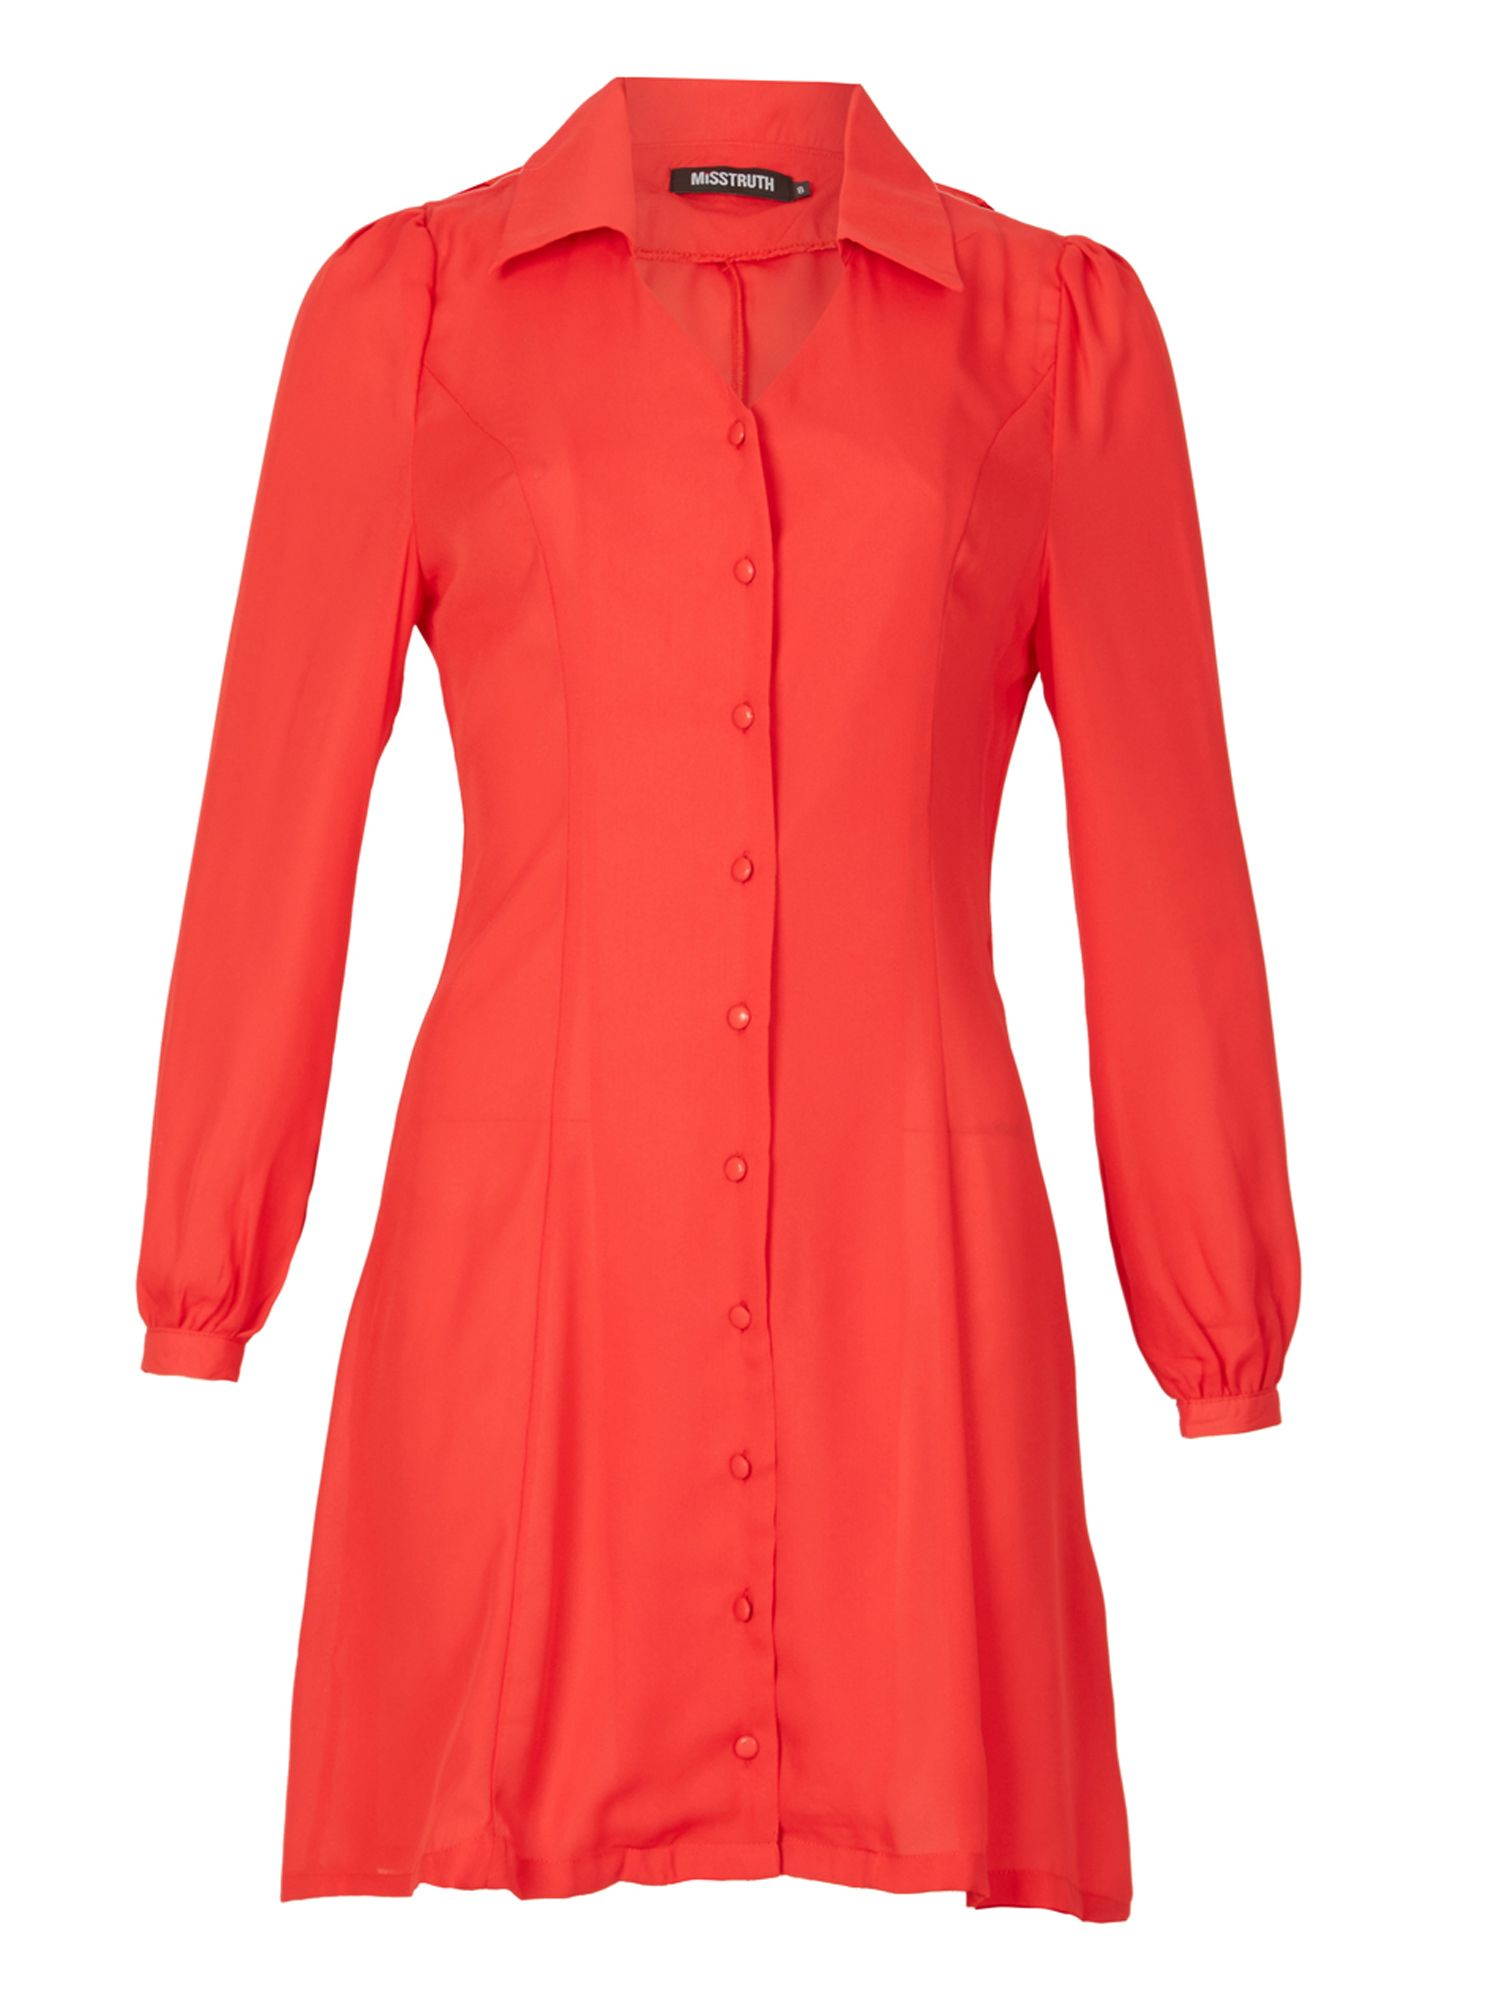 MISSTRUTH Button Front Collared Dress, Red